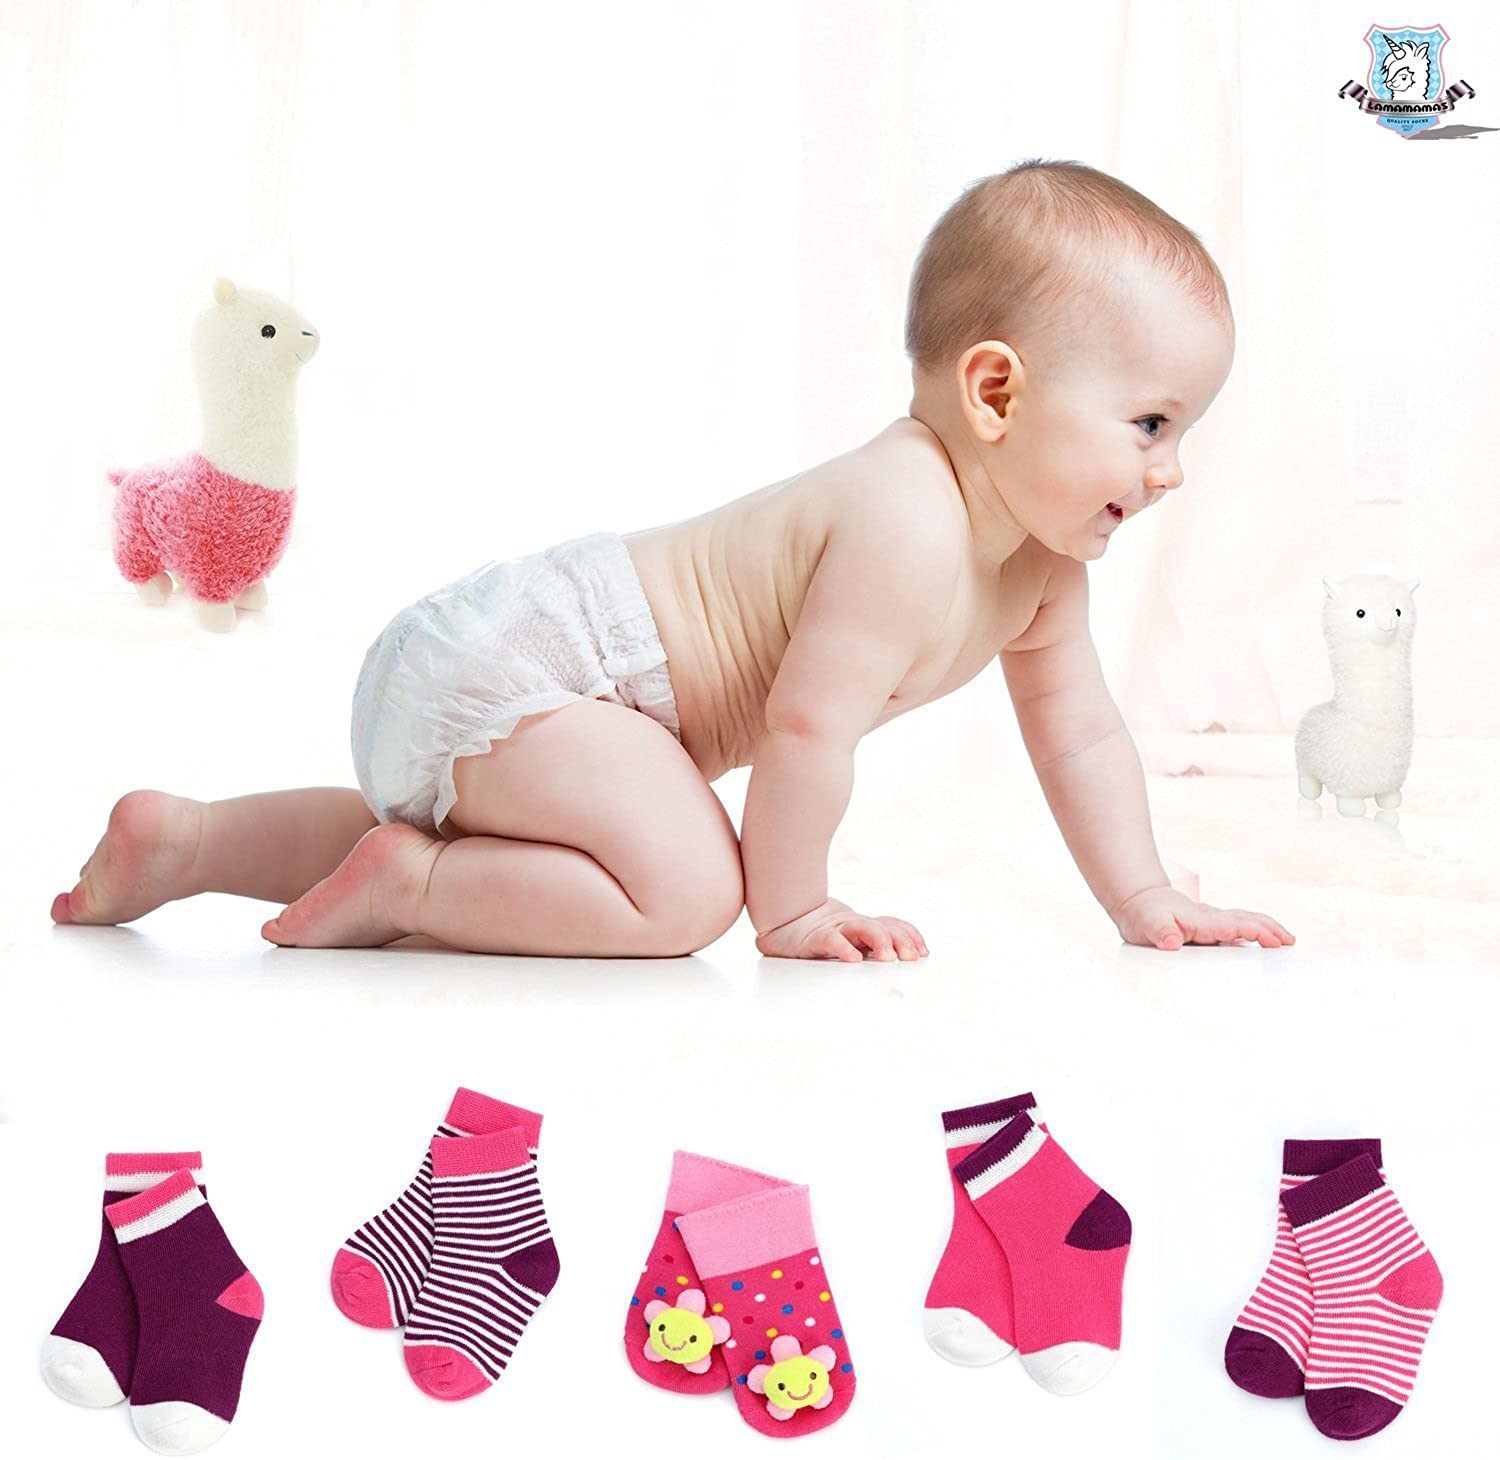 LAMAMAMAS Baby Toddler Socks Boys Girls Non Slip with Grip Cartoon 5 Pairs for 0-6 months